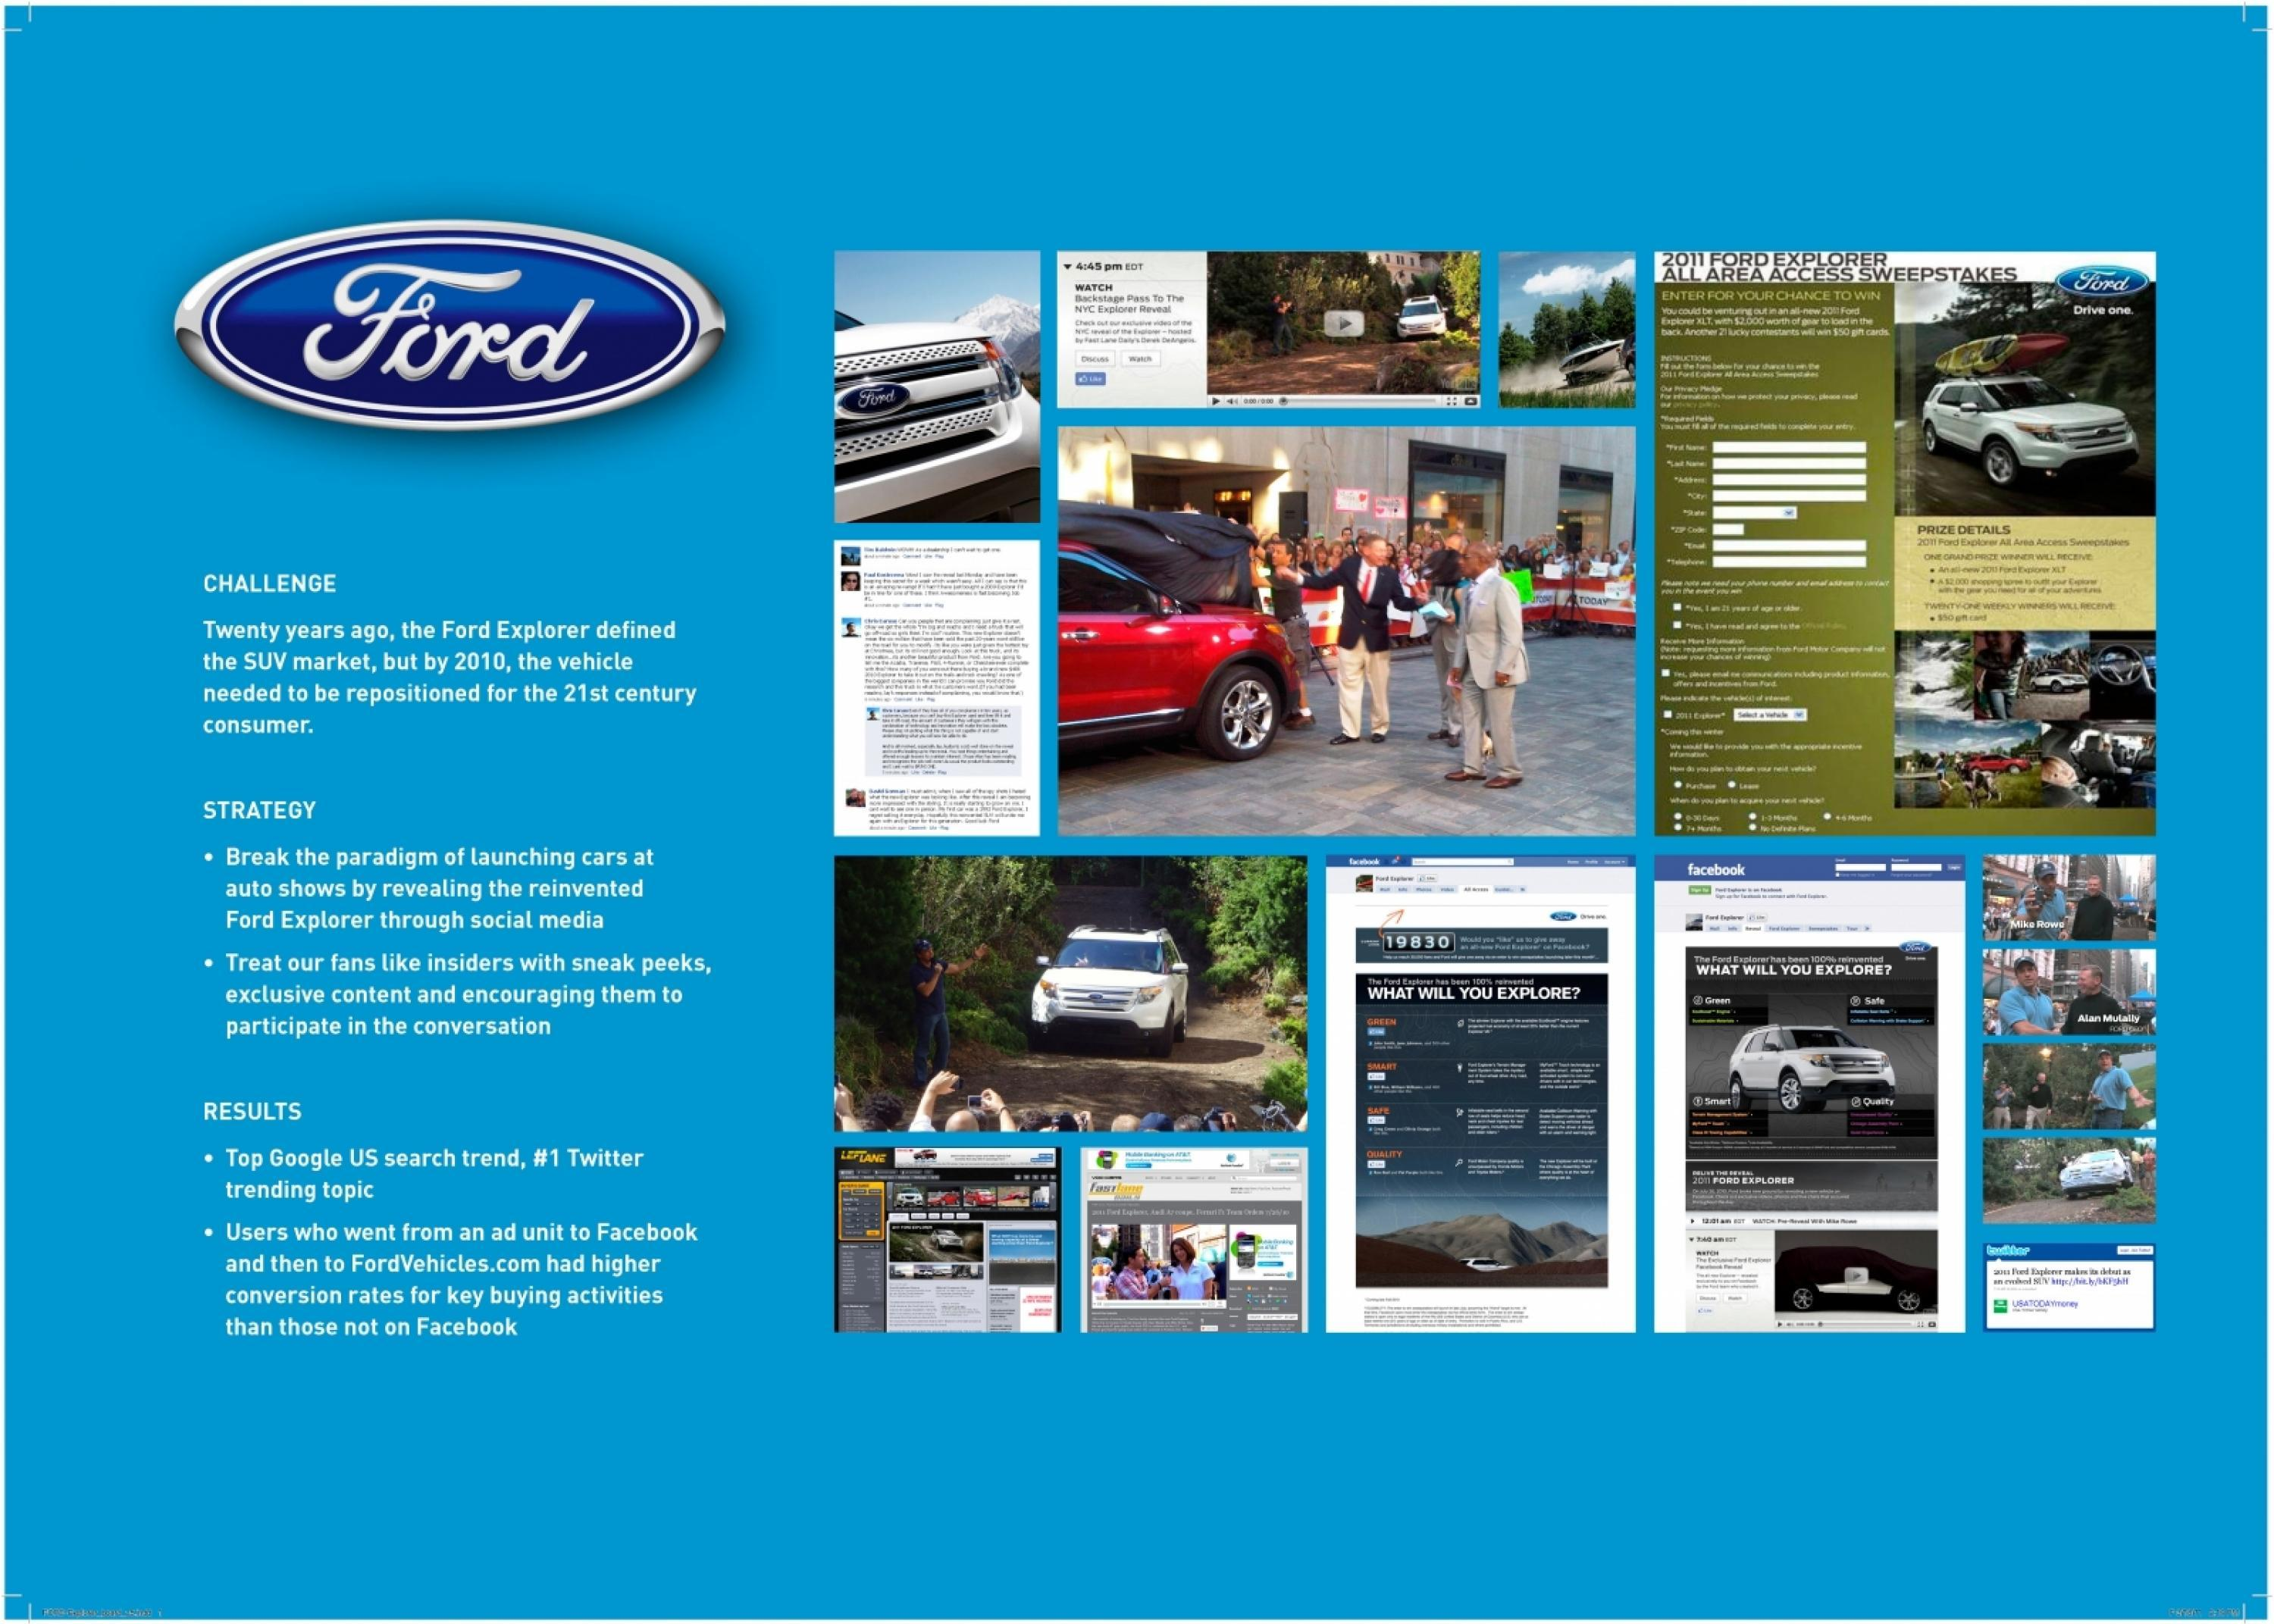 ford motors corporate level strategy The strategy hasn't cost ford europe market share, which de waard says remains steady at about 83% the executive says the small cross/utility vehicle segment represents opportunity for growth.